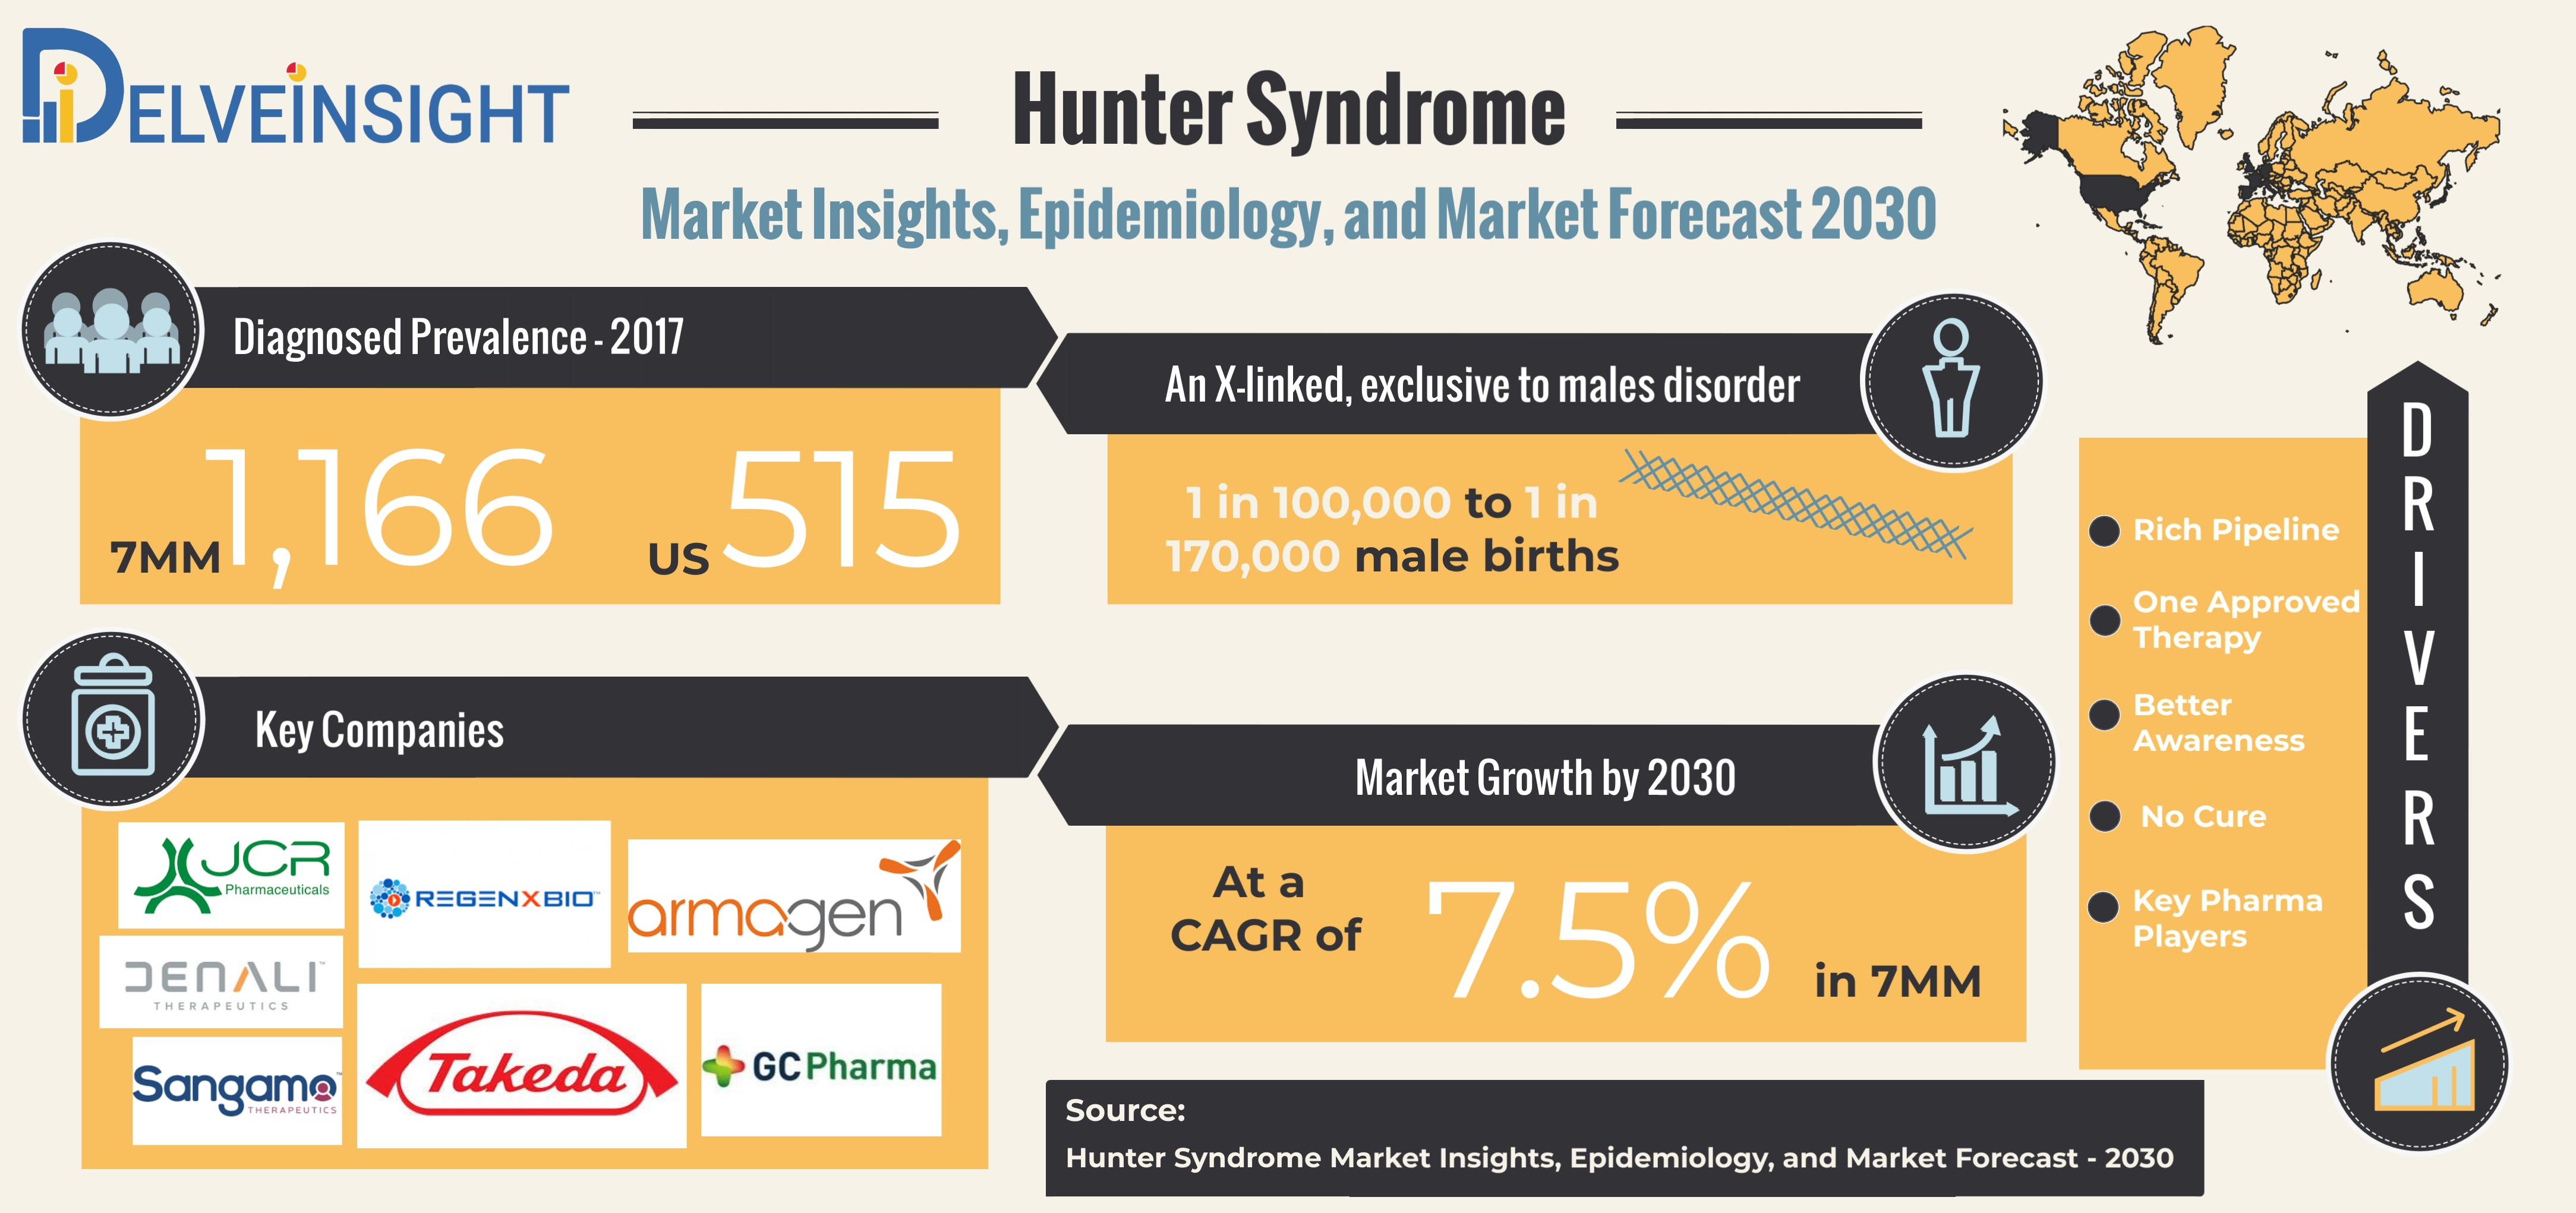 Hunter Syndrome Epidemiology Forecast: Historical and Forecasted Analysis - 2017-30